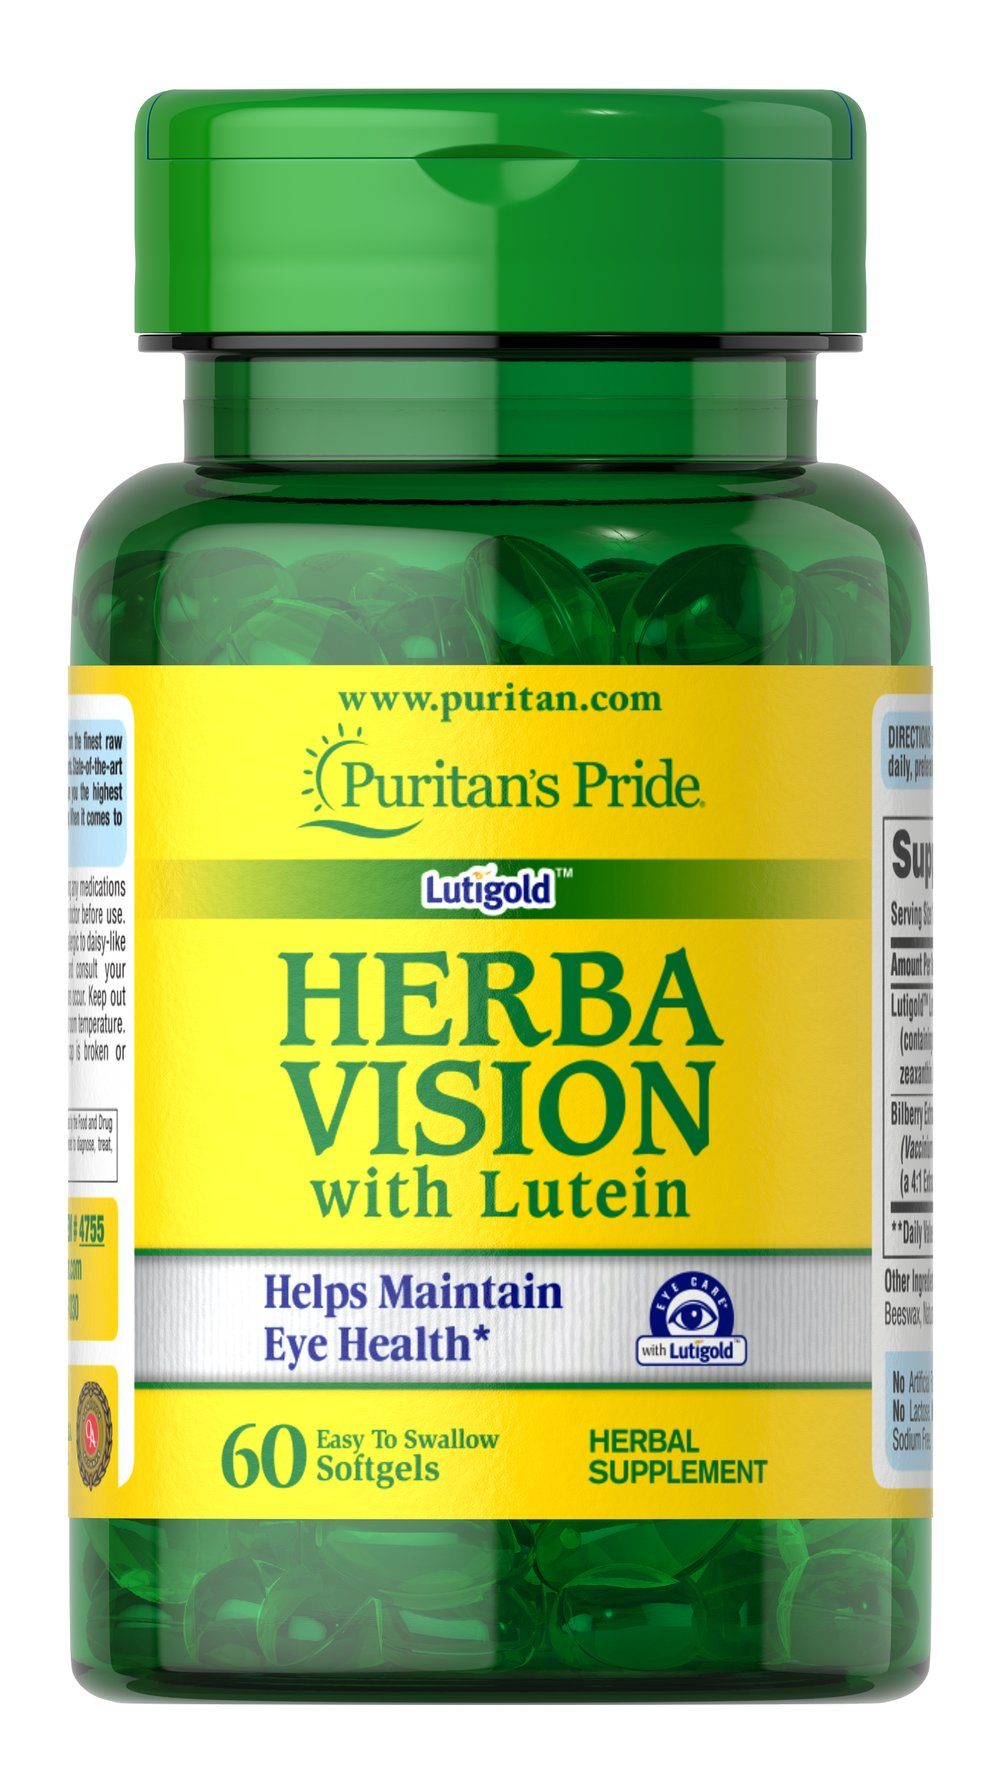 Herbavision with Lutein and Bilberry <p><strong>Nutritional support for your eyes**</strong></p><p>Contributes to clear, healthy vision**</p><p>Formulated with Lutigold™ Lutein, derived from pure, natural sources</p><p>Contains naturally occurring protective antioxidants and active carotenoids, such as Zeaxanthin, for synergistic support**</p><p>Comes in convenient, easy-to-swallow softgels</p> 60 Softgels  $11.49